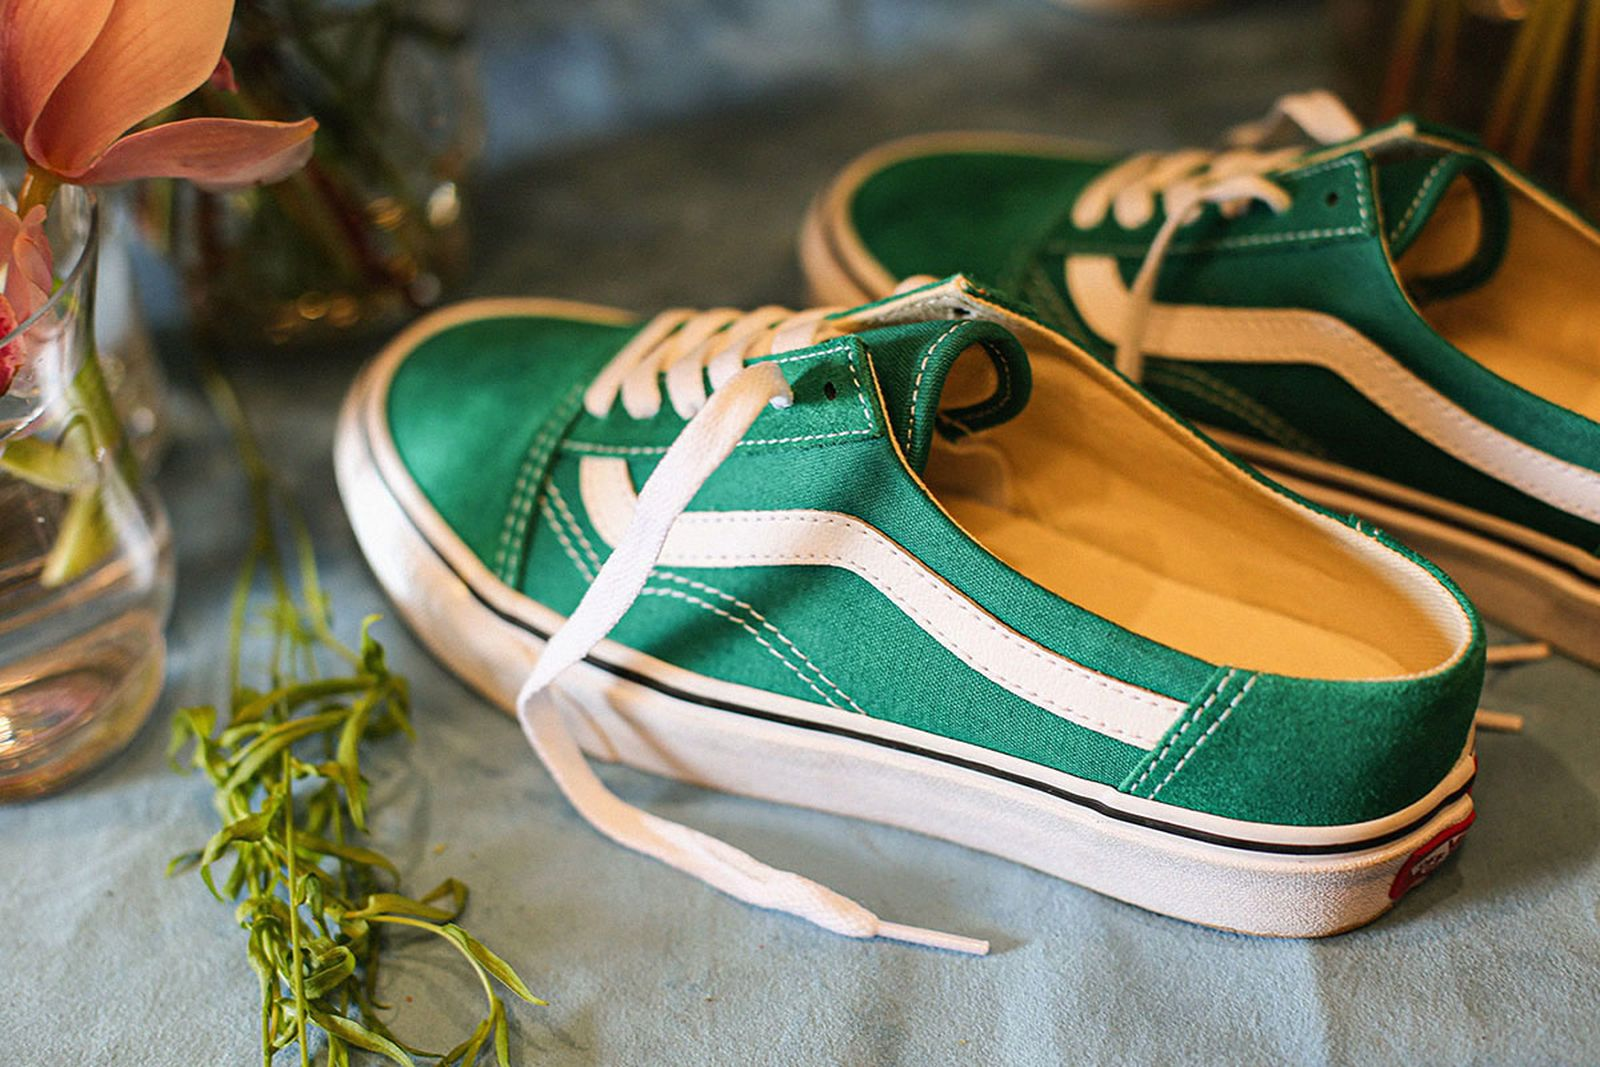 Green Vans Mule Old Skool with white side stripe